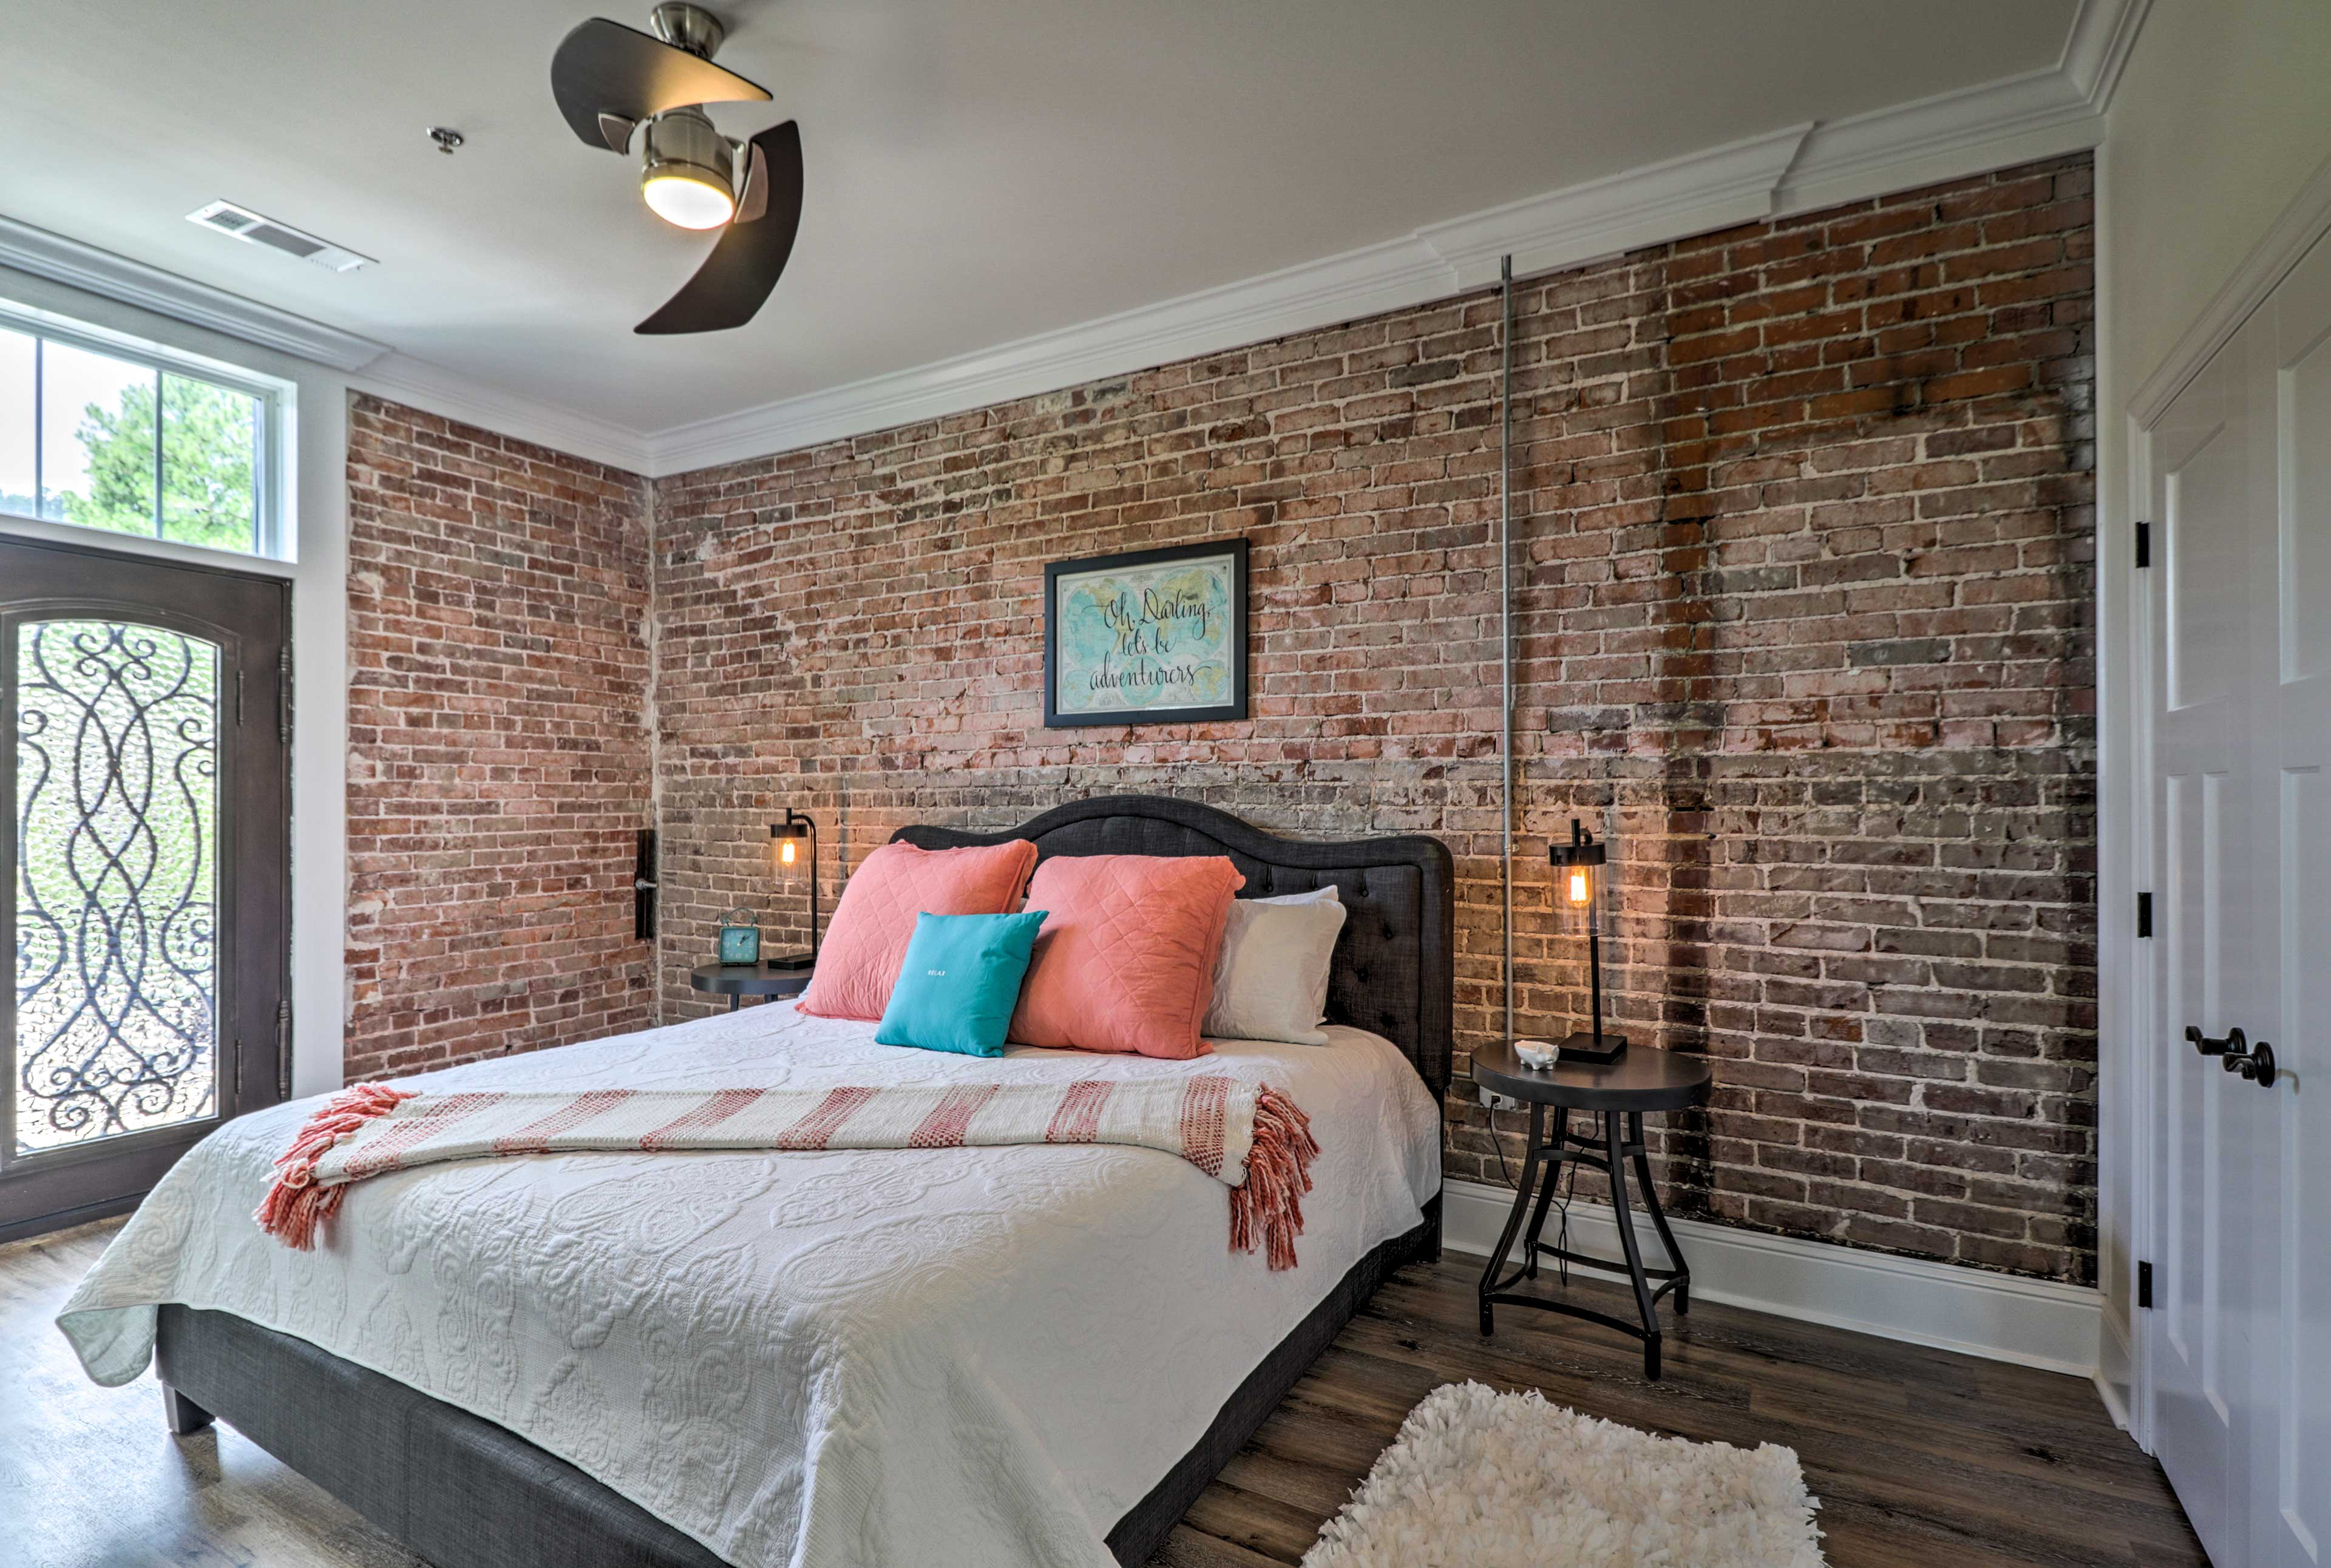 Claim the master suite for yourself!